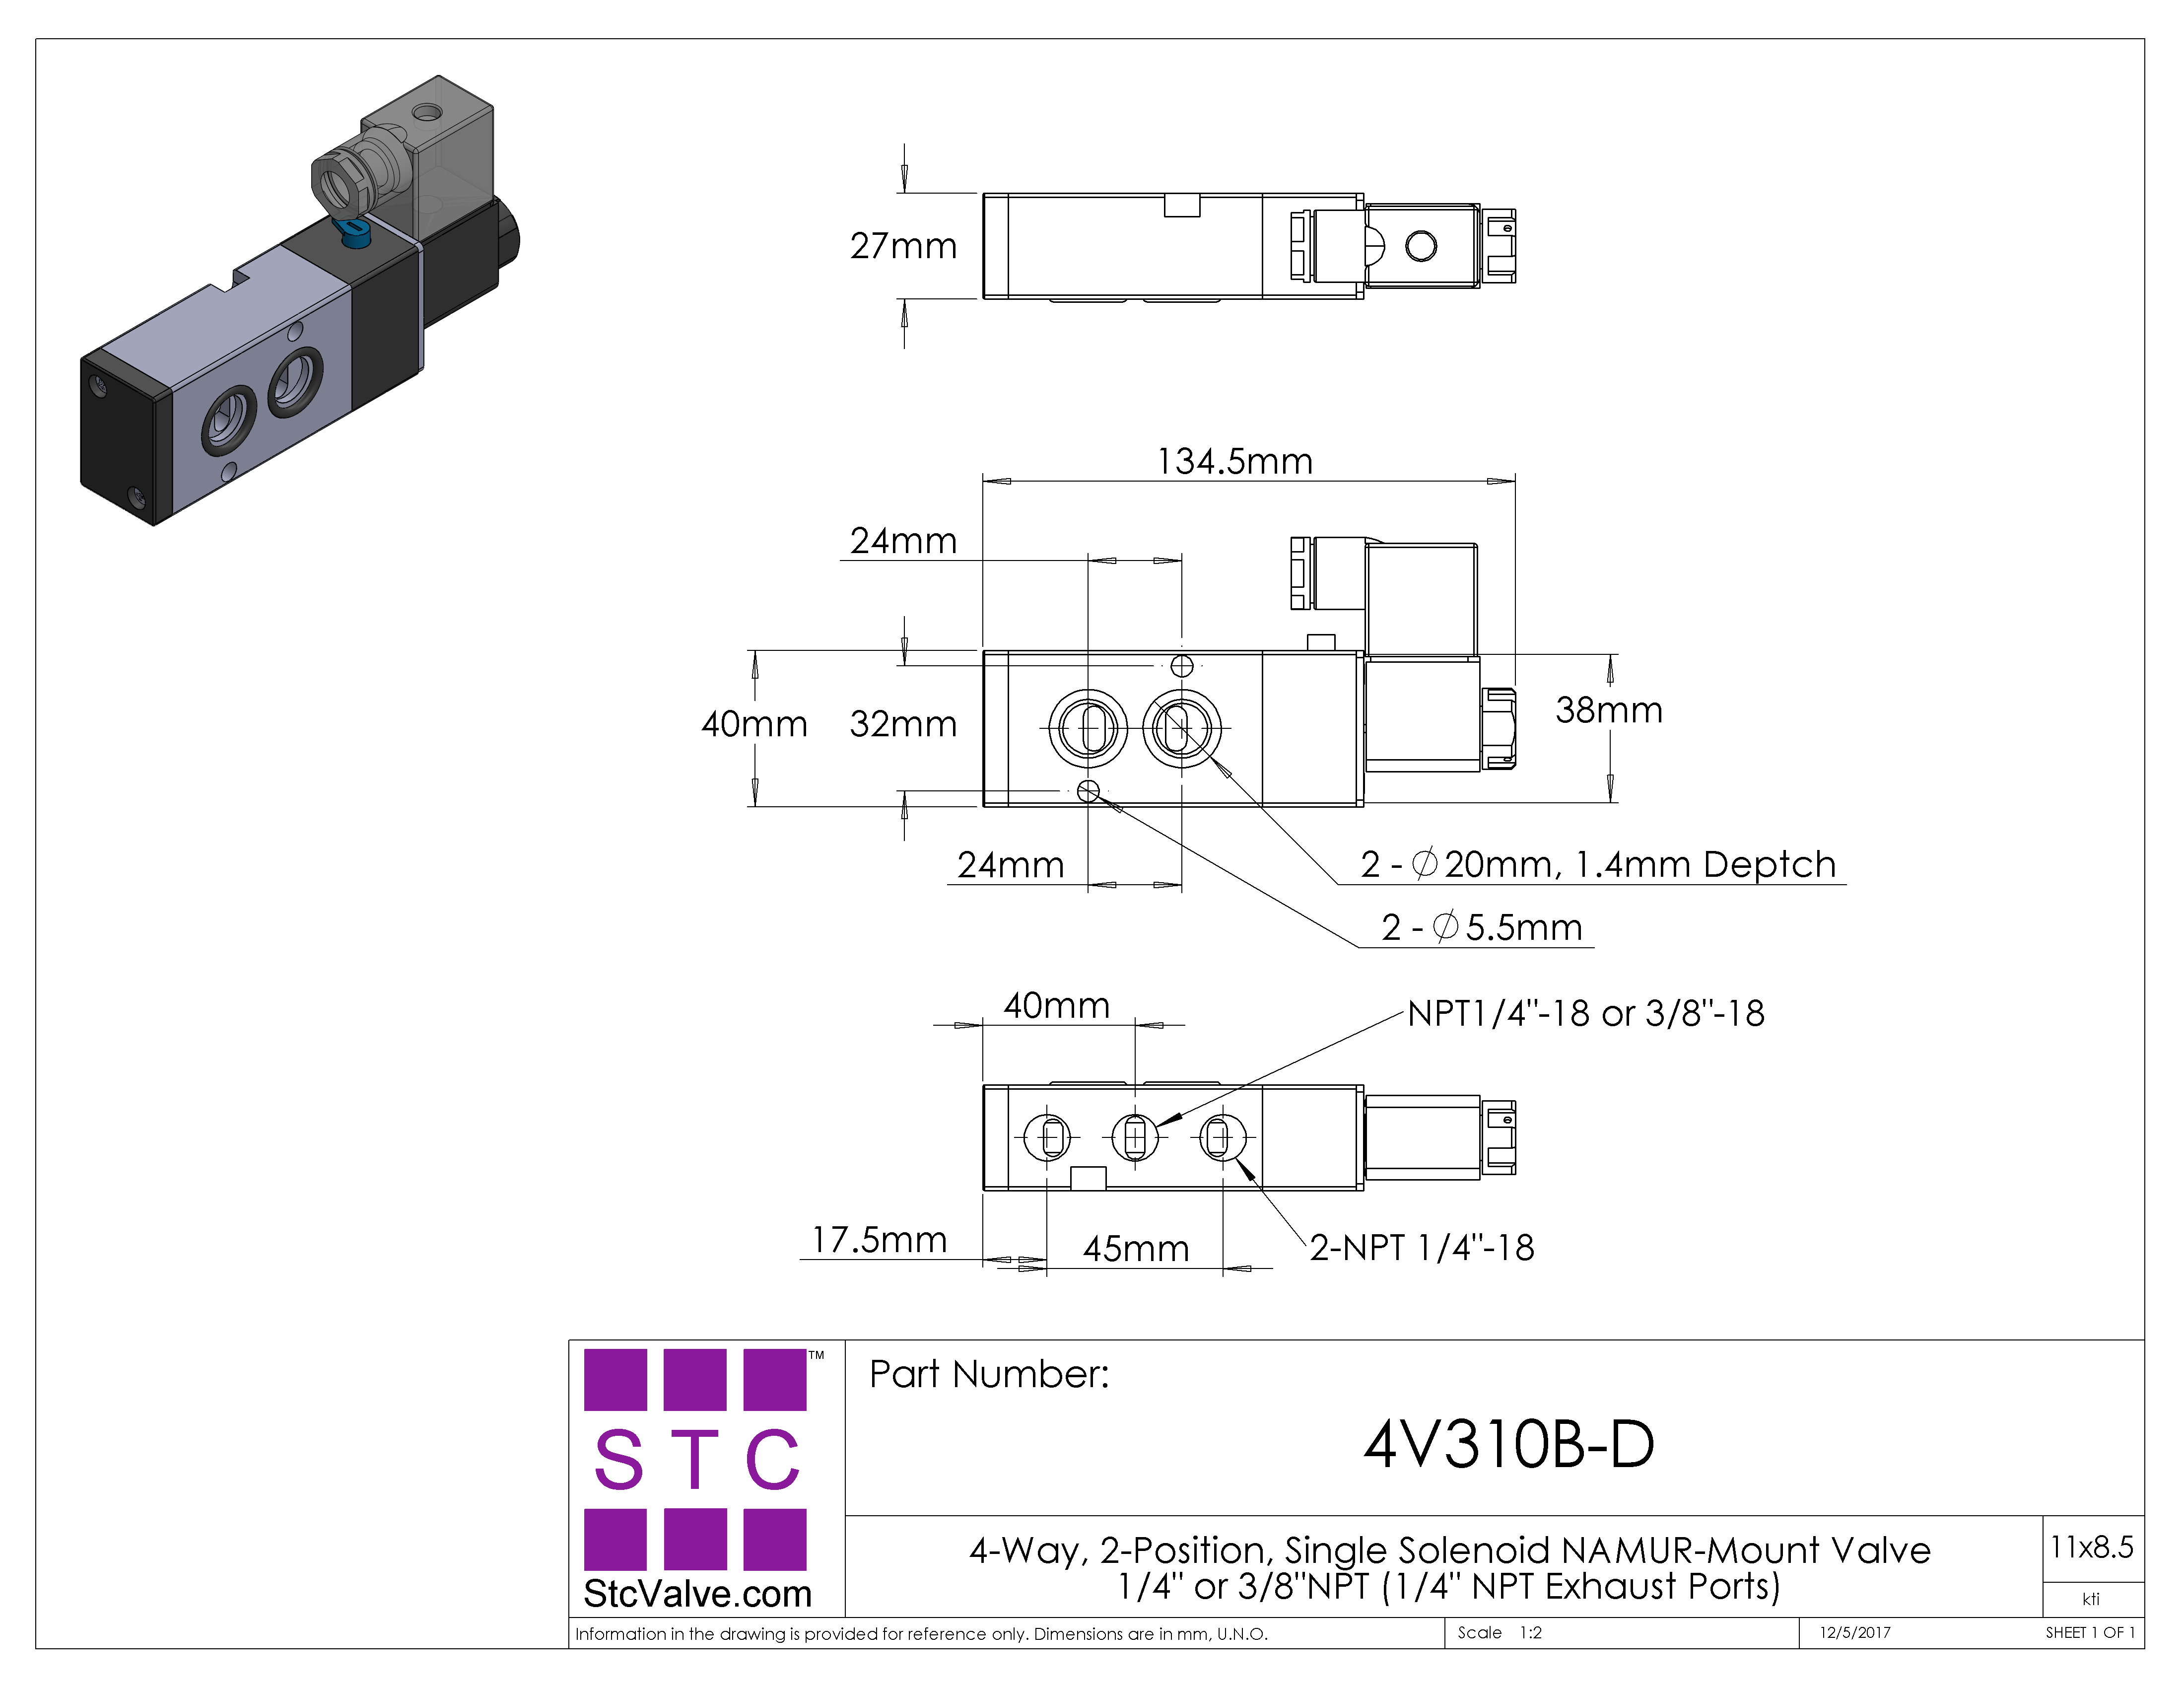 Solenoid Valve Wiring Diagram from static-cdn.imageservice.cloud